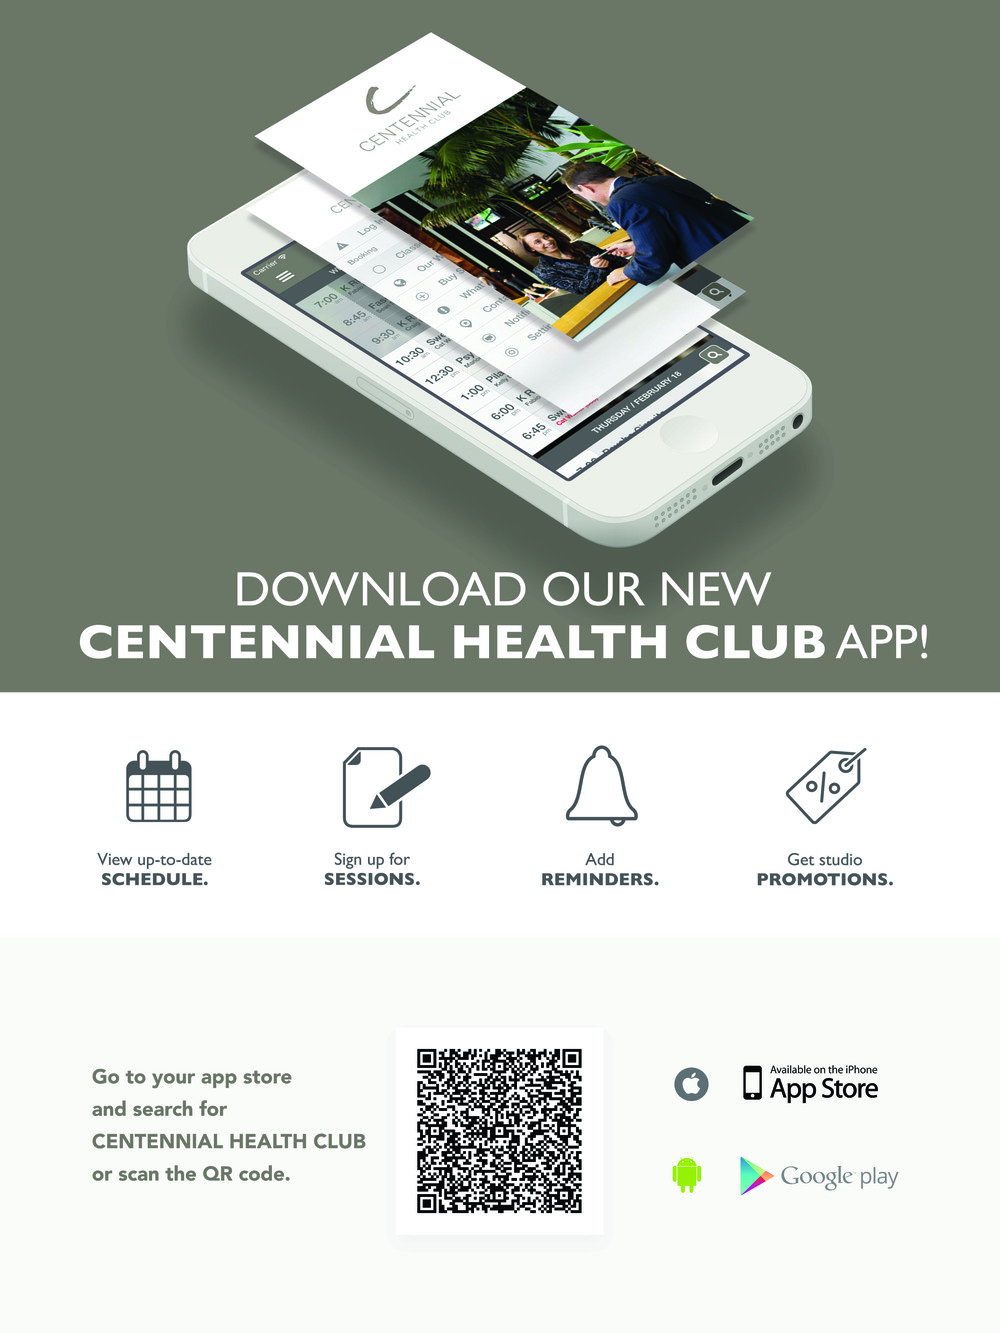 Centennial Health Club Promotional Blog.jpg